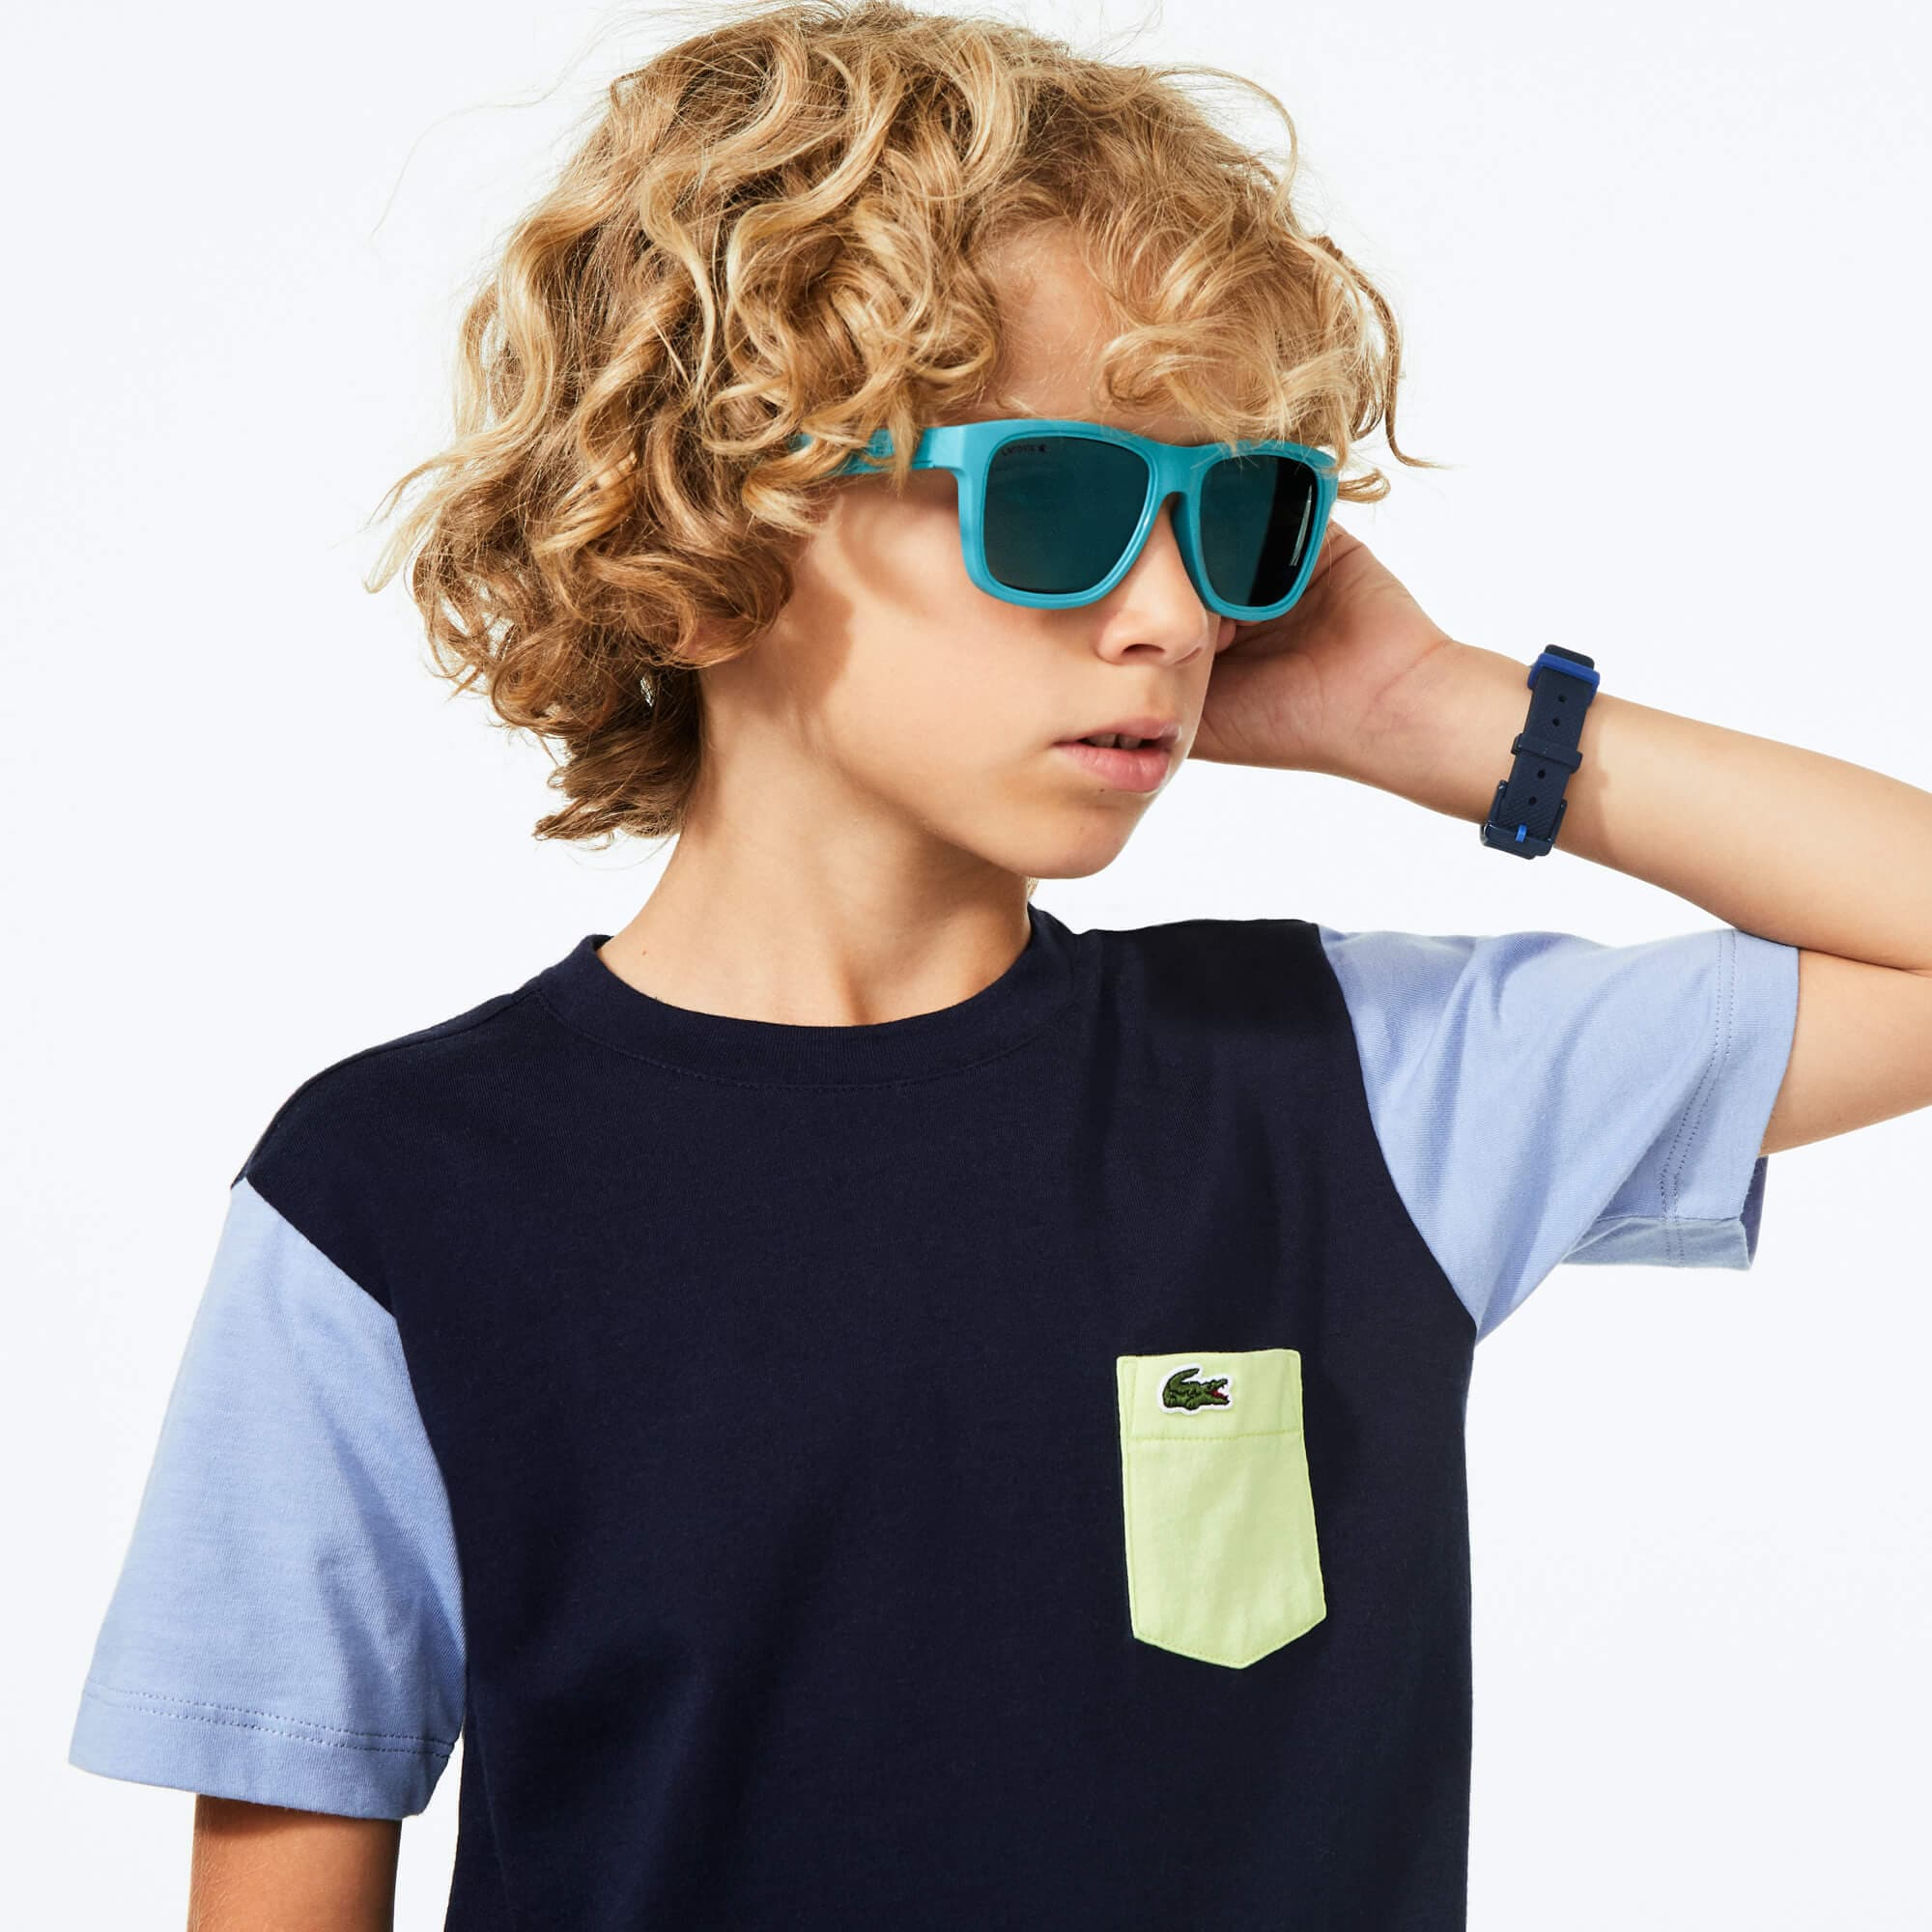 Kids' Rectangle Plastic Floatable Sunglasses